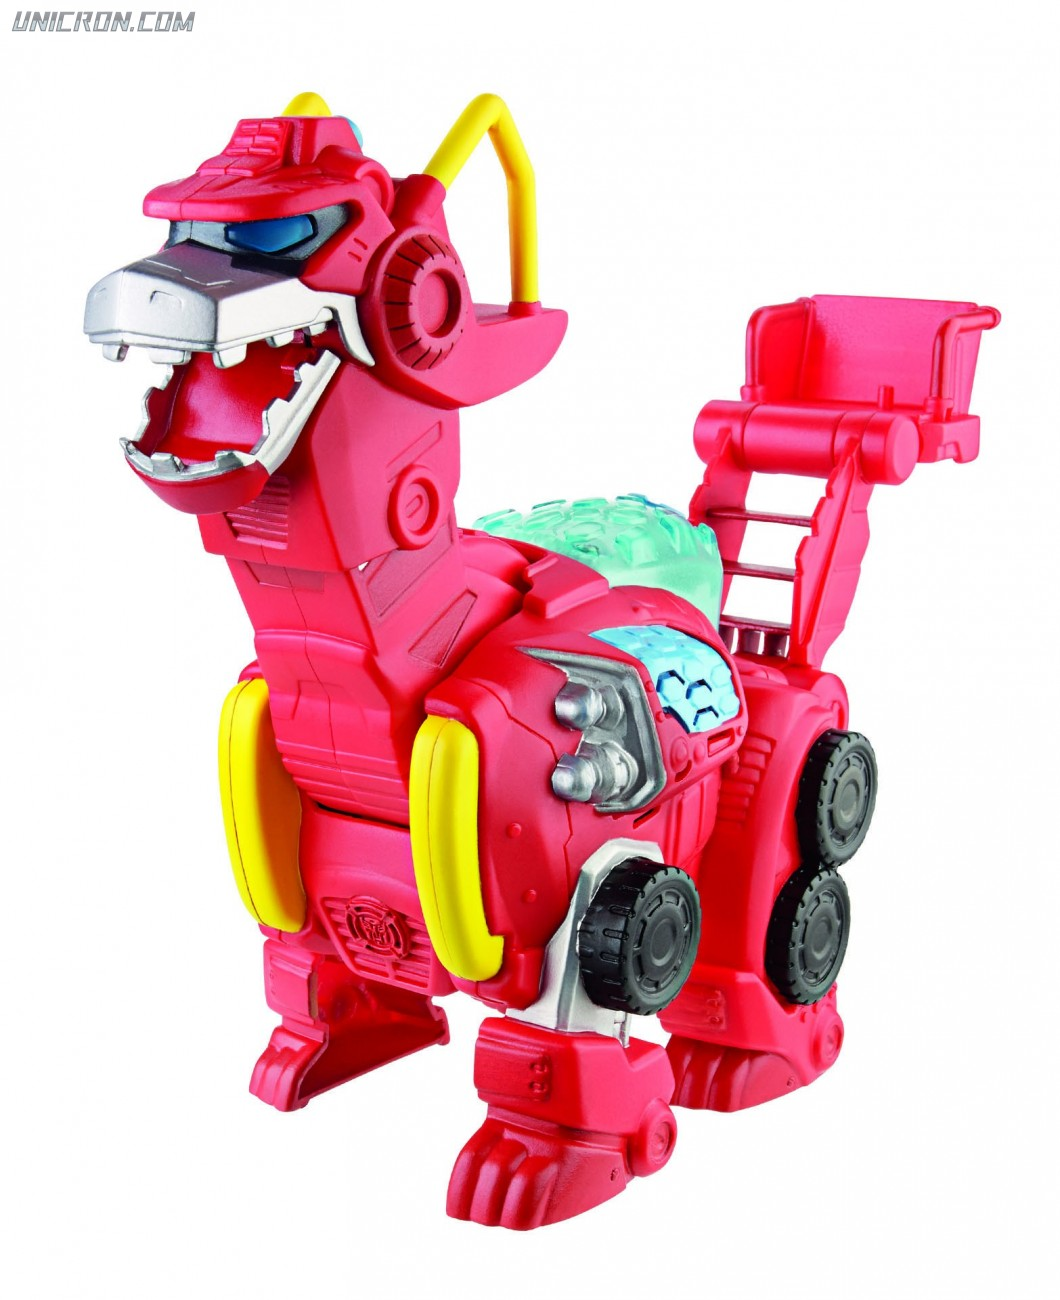 Transformers Rescue Bots Heatwave the Dino toy